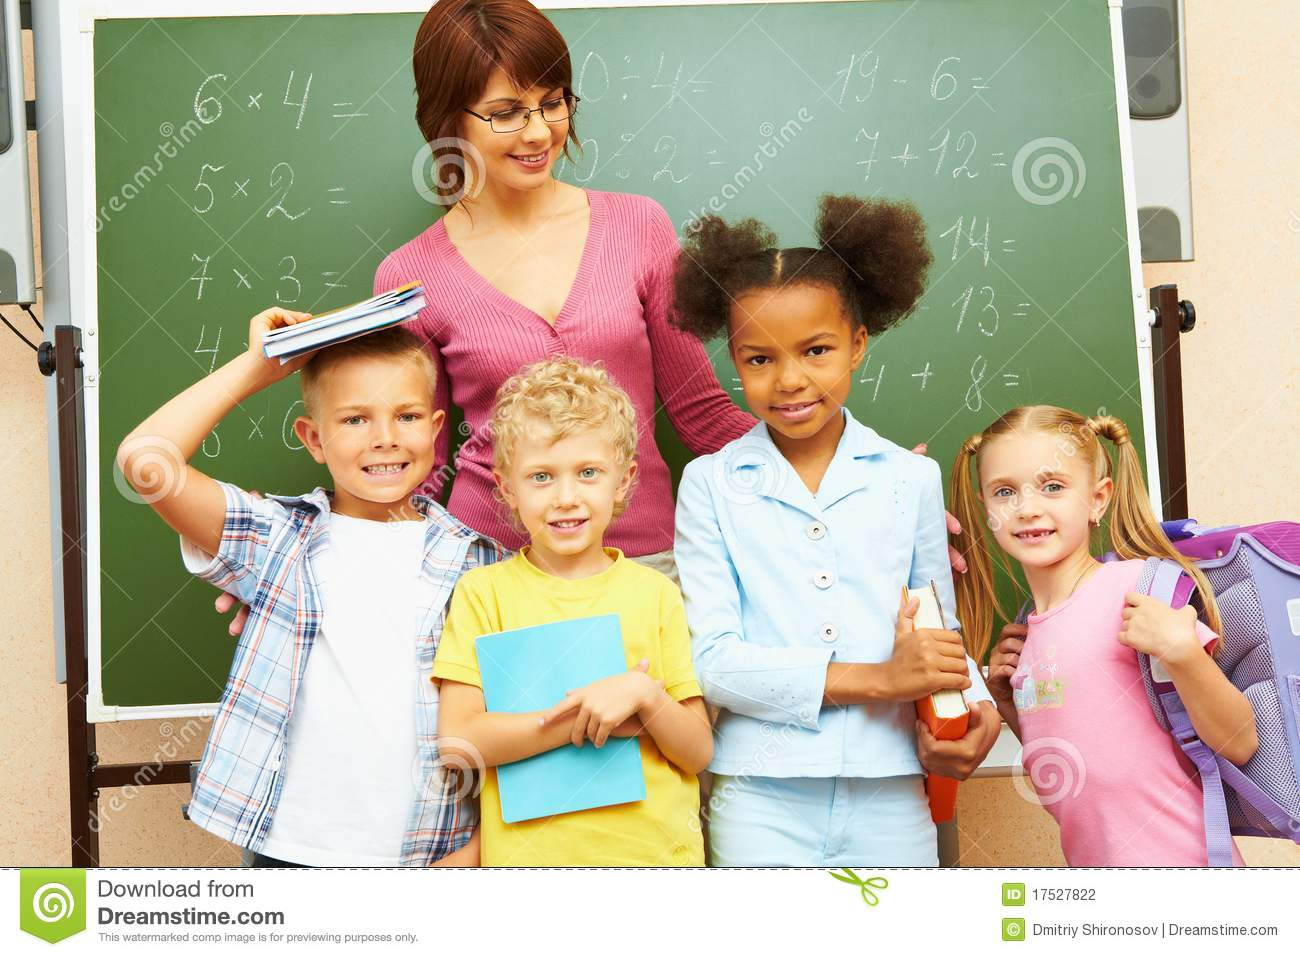 ... of several kids and their teacher standing by blackboard in classroom